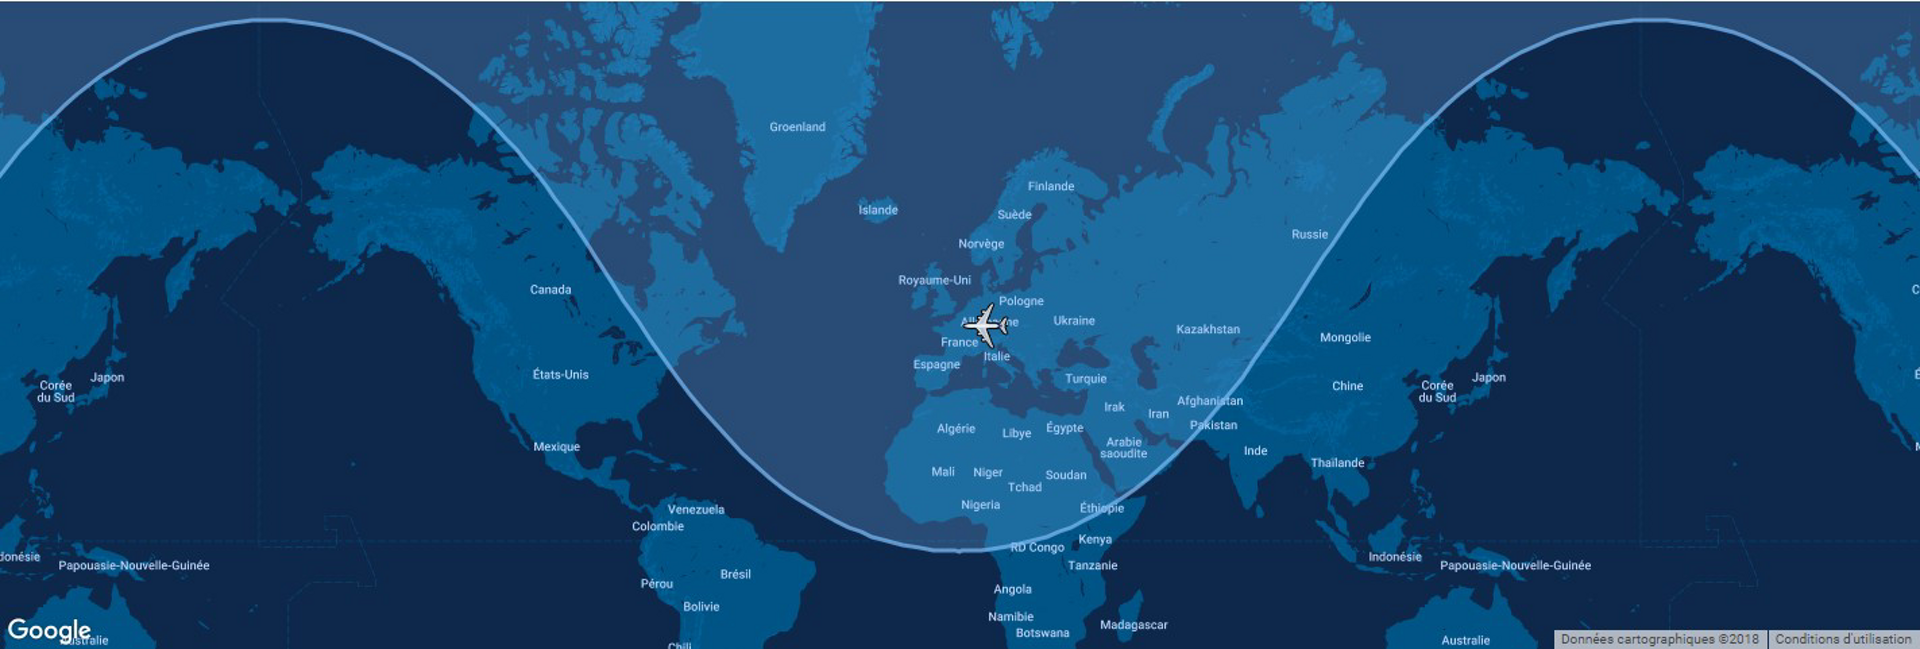 This diagram shows the typical range for Airbus' A318 commercial aircraft overlaid on a global map.